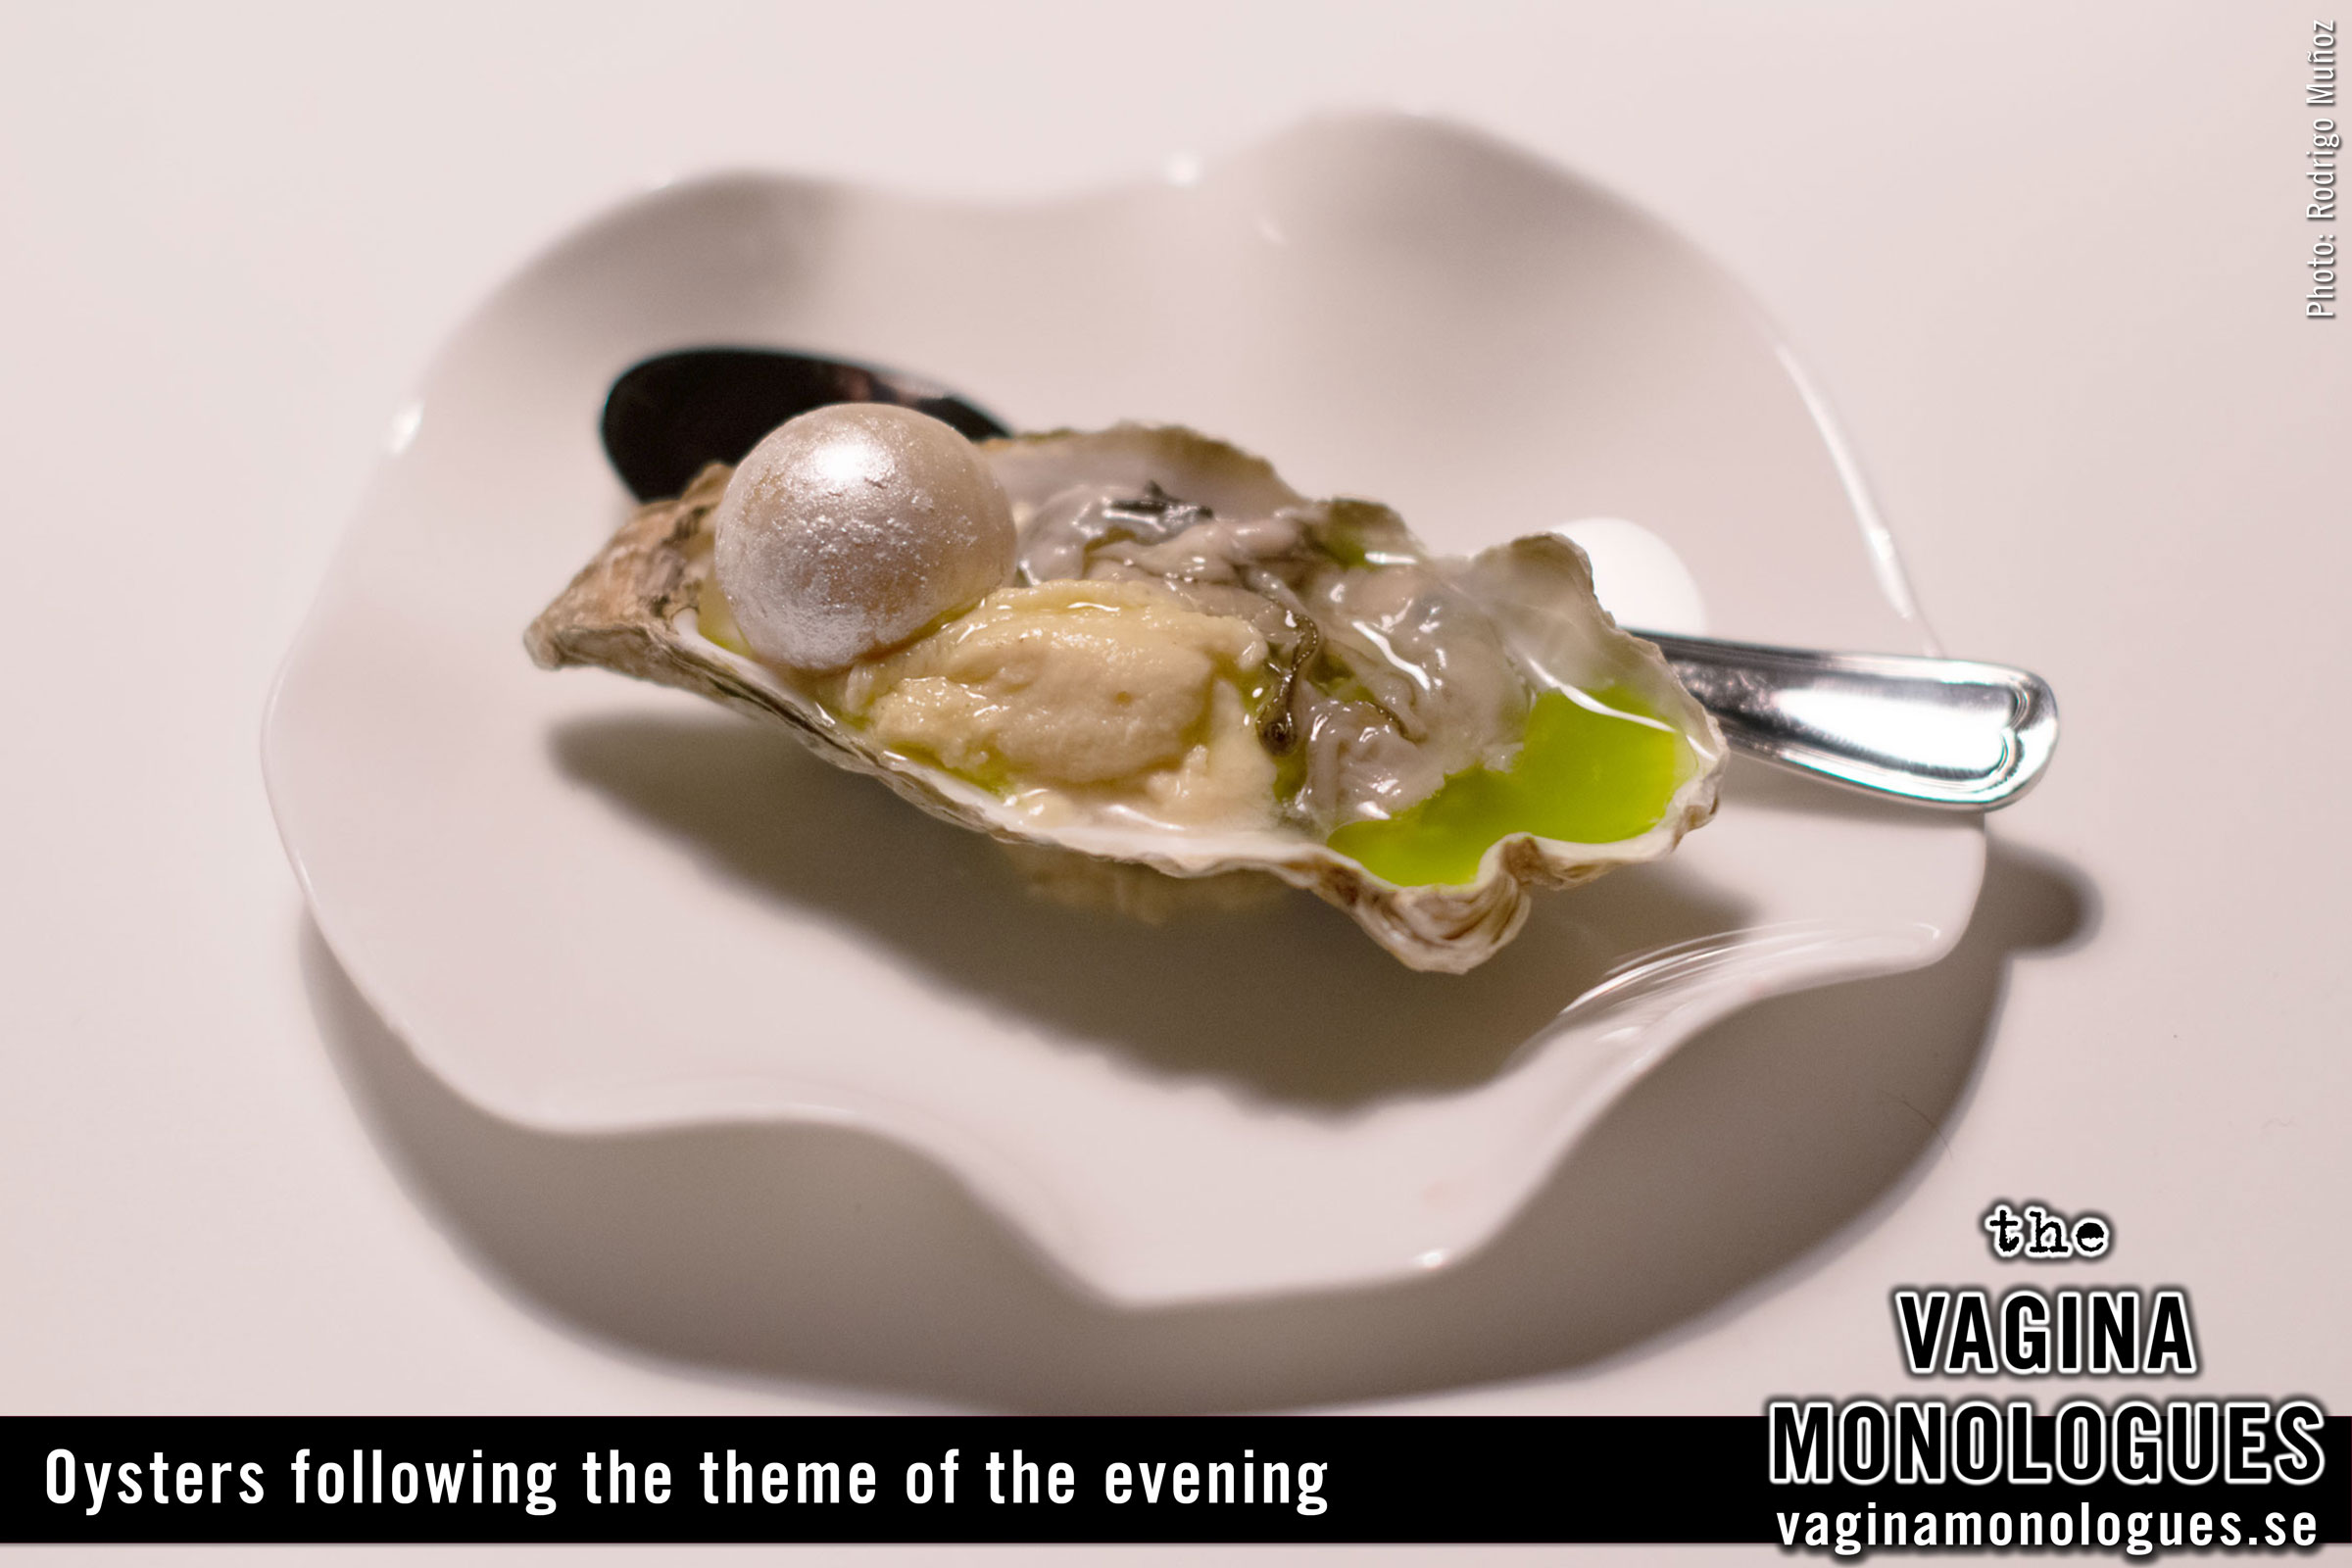 Oysters following the theme of the evening.